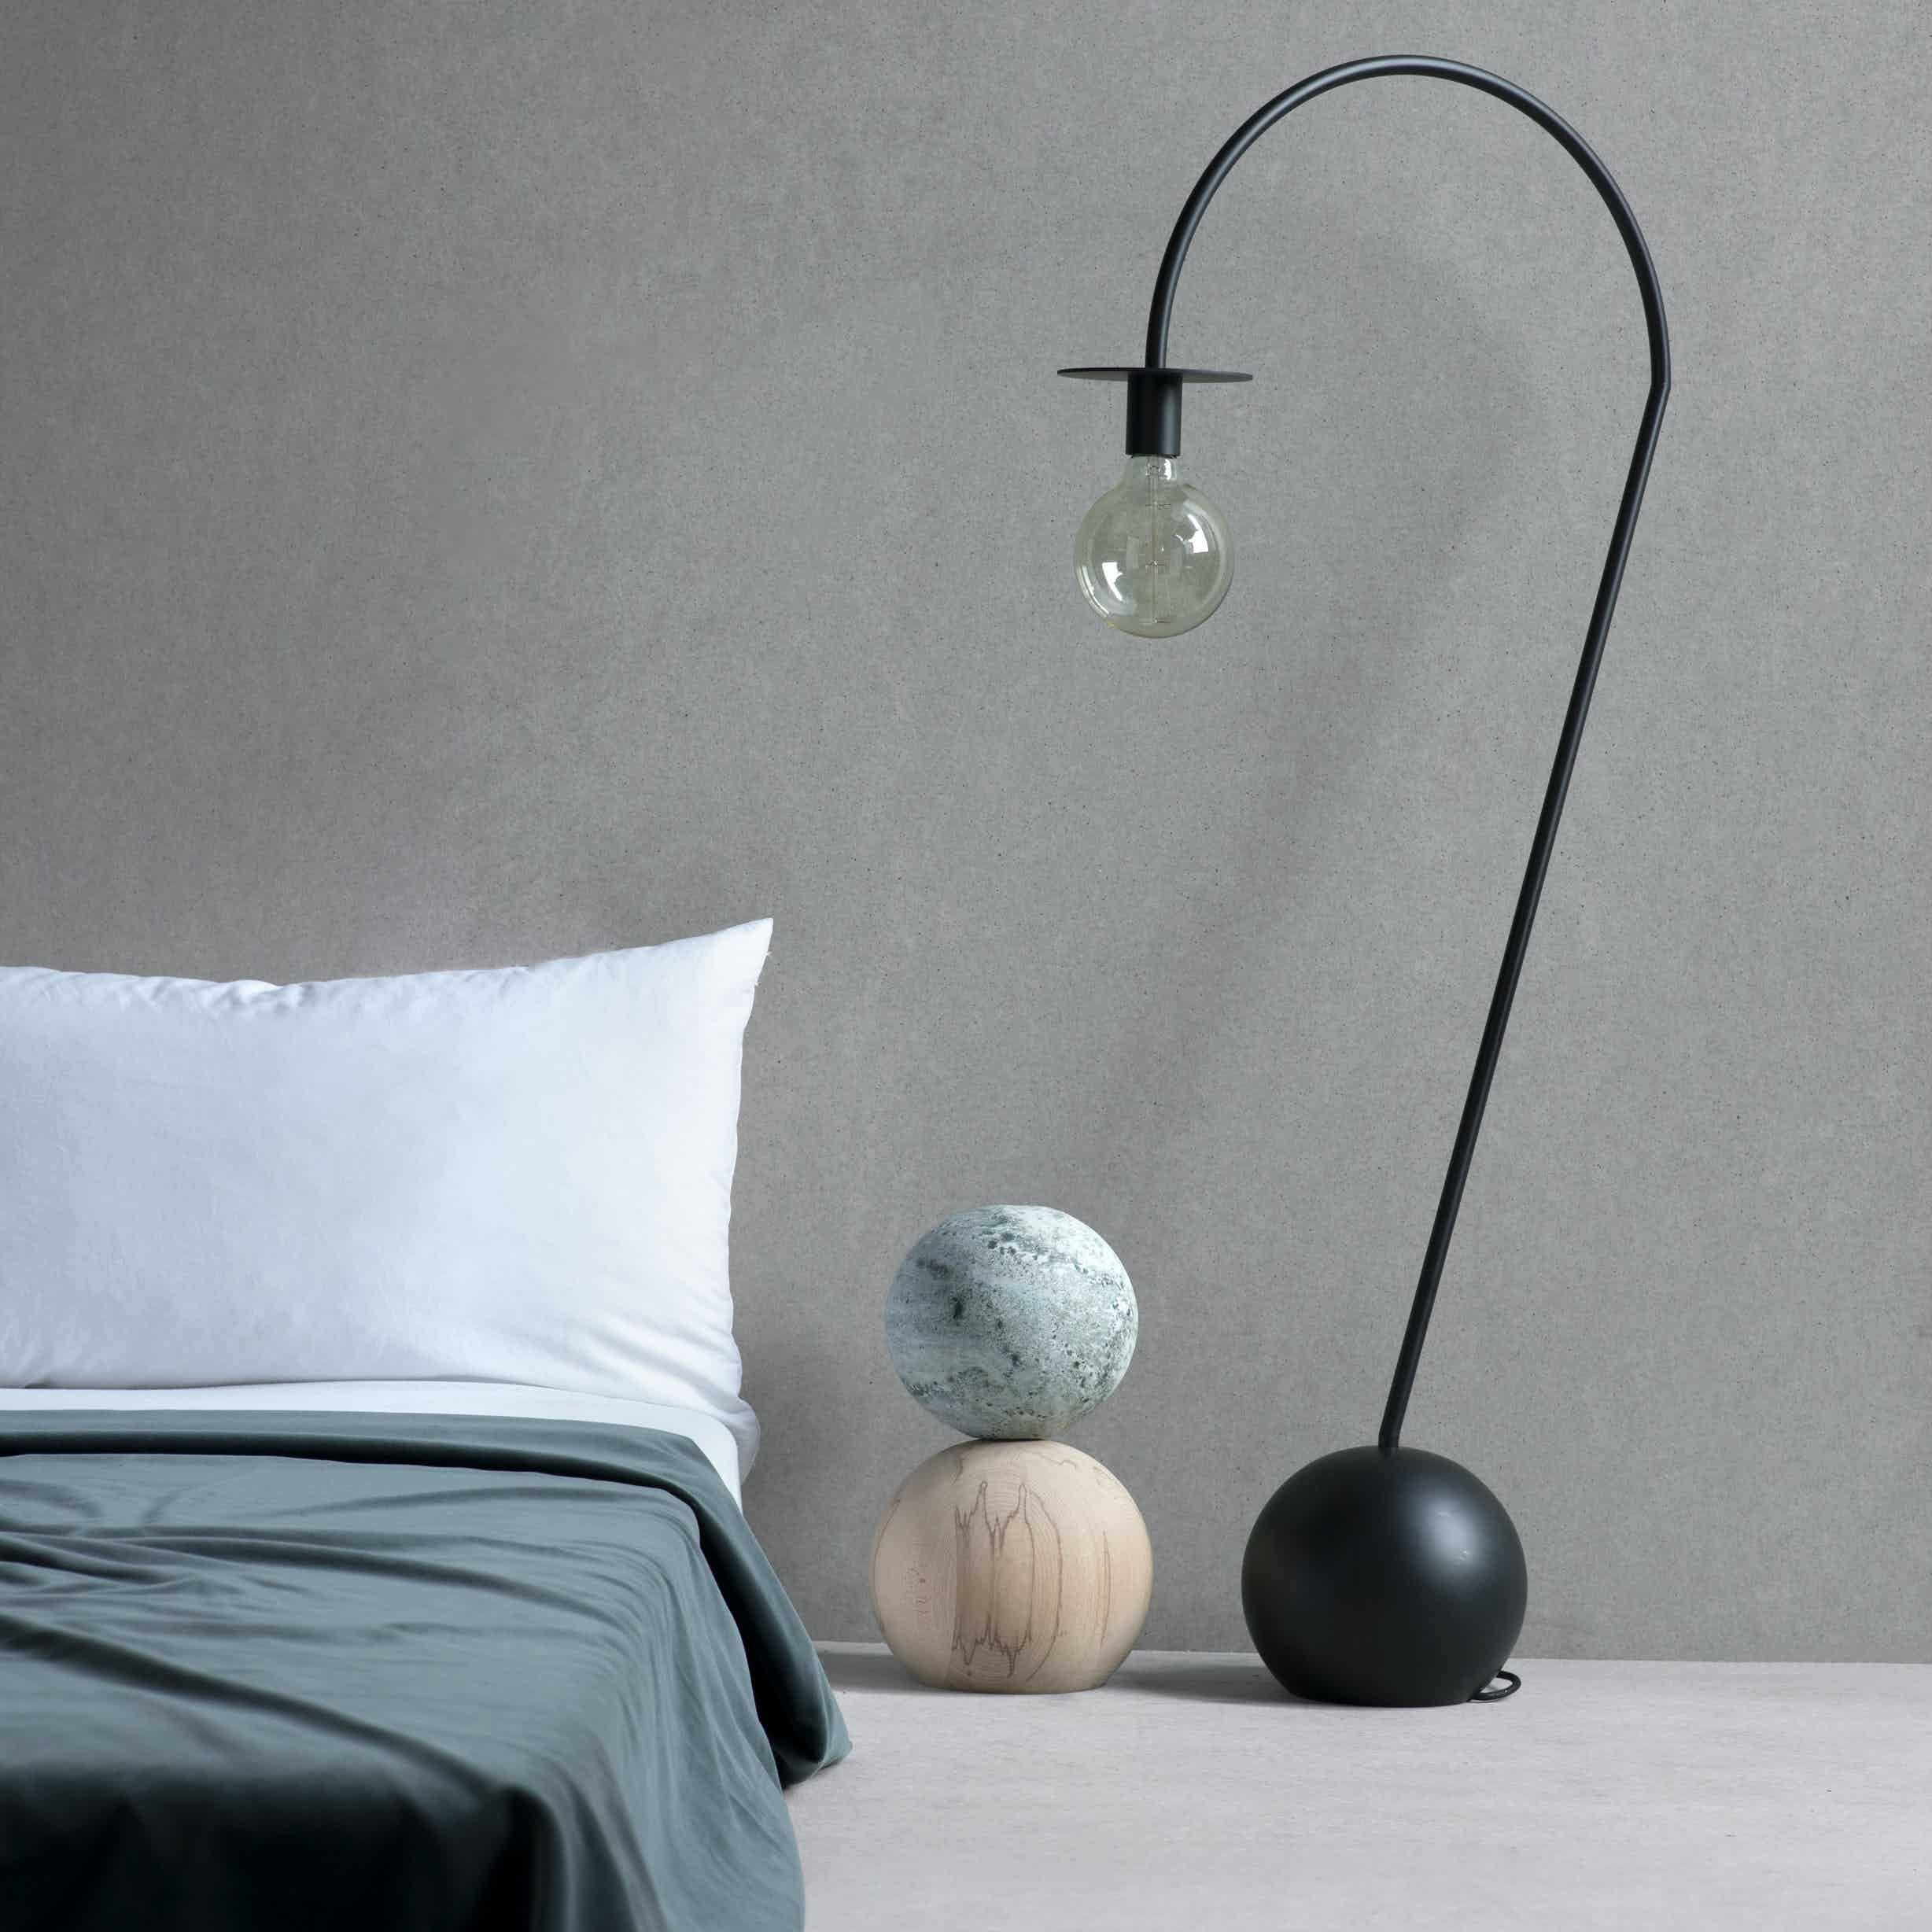 La Lampe Floor Lamp By Friends Founders Now Available At Haute